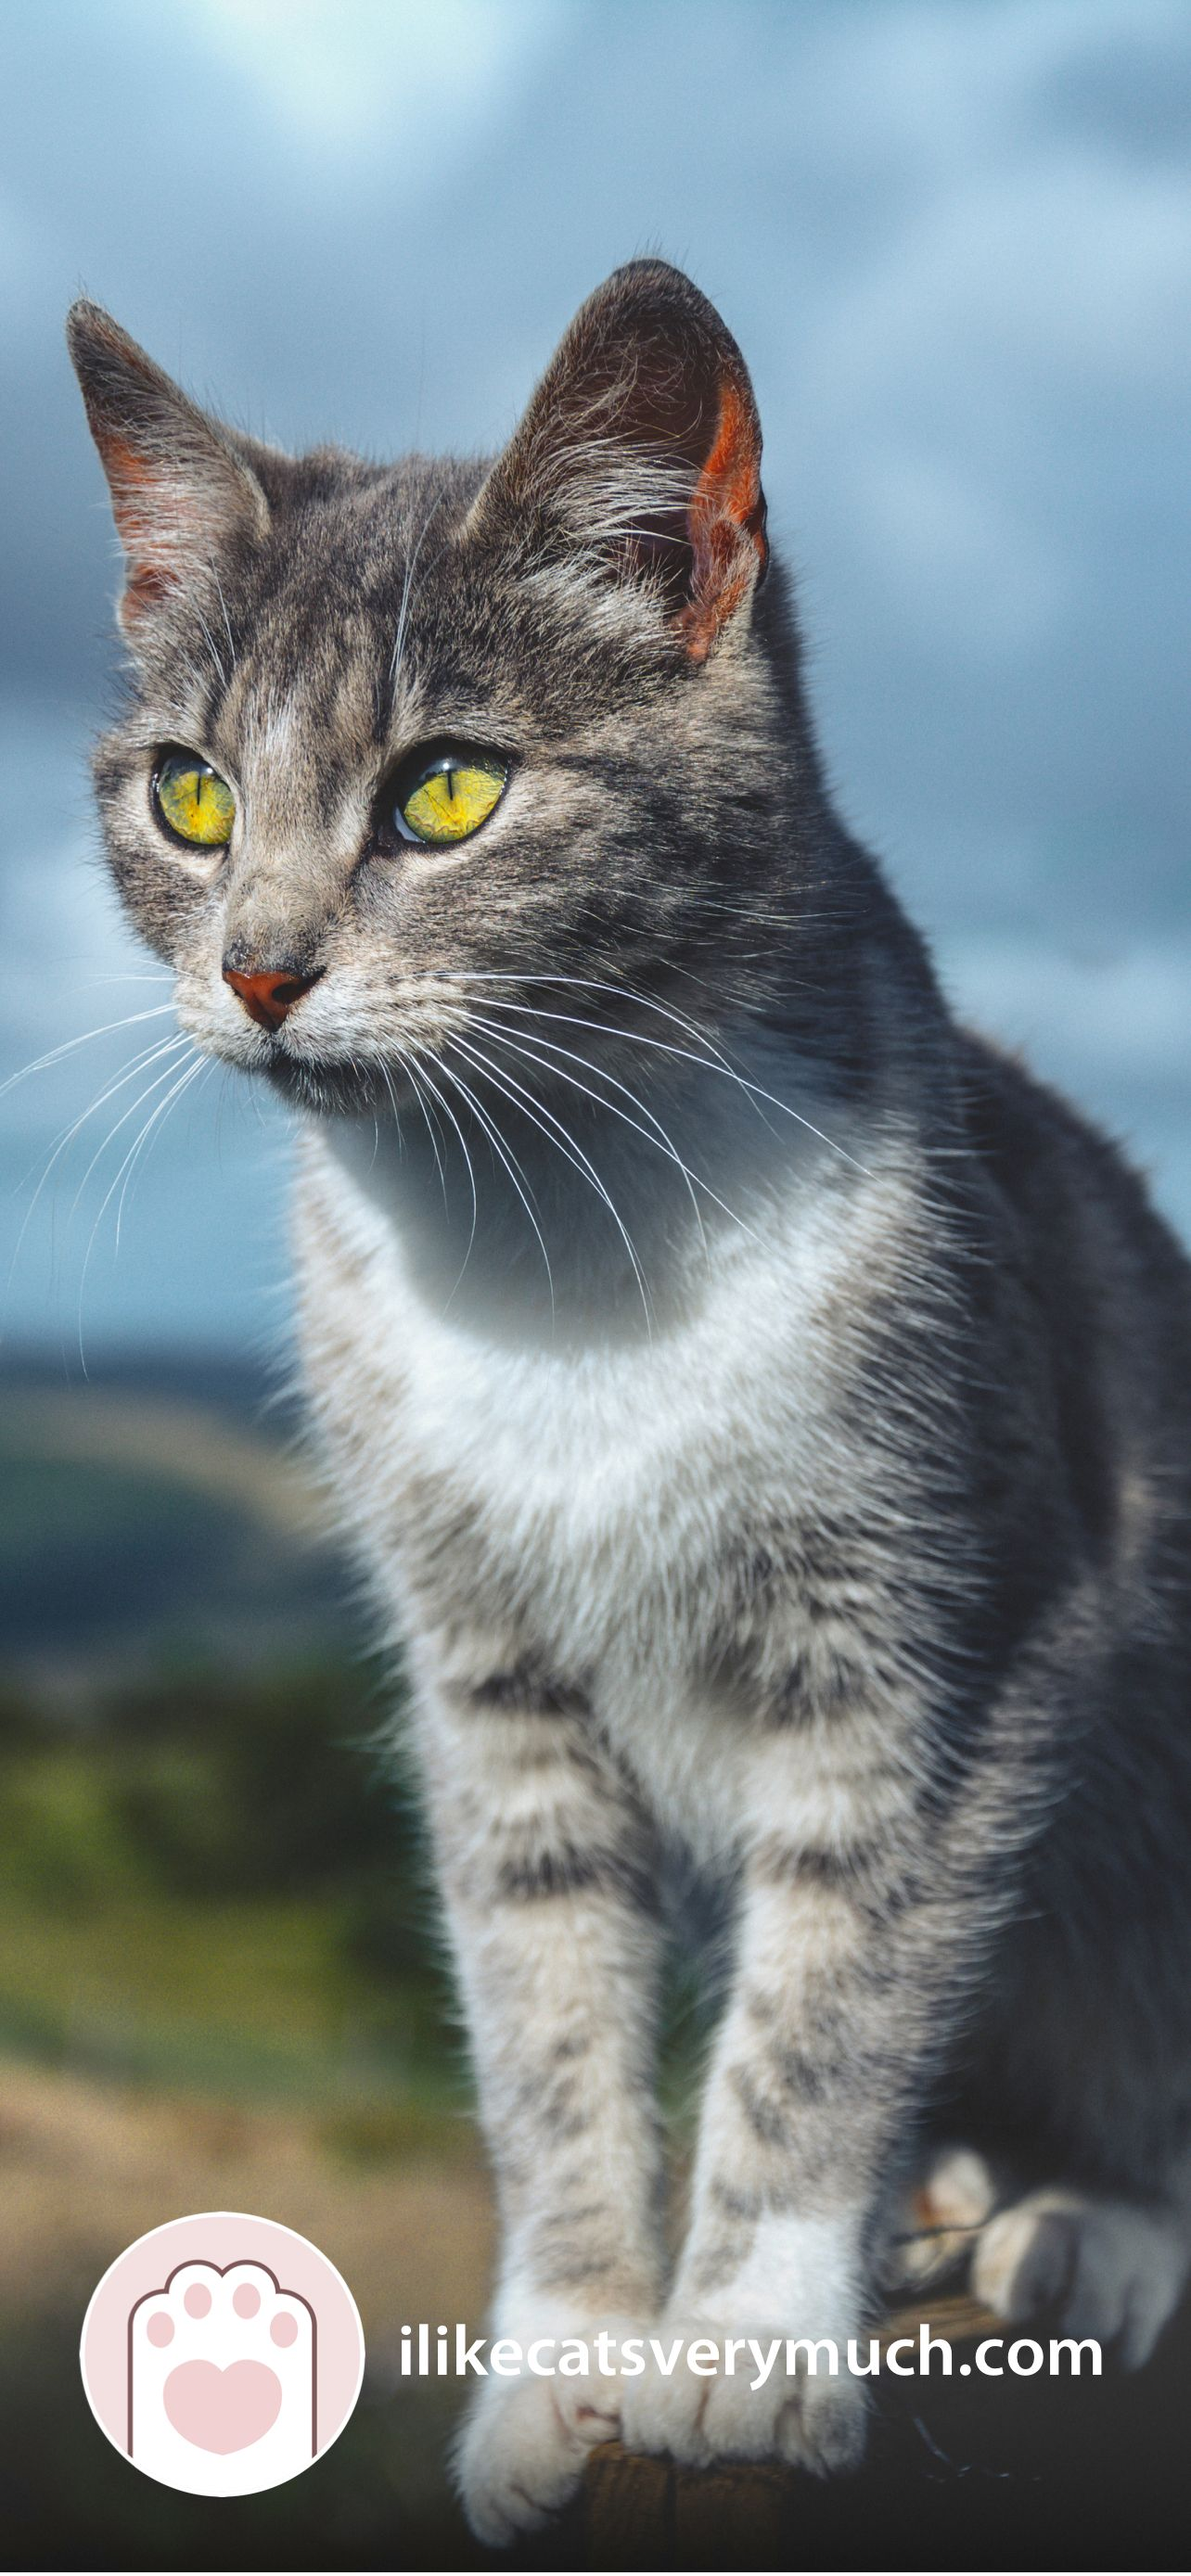 Cat Wallpapers For Phone 2021 I Like Cats Very Much In 2021 Cat Wallpaper Cats Beautiful Cat